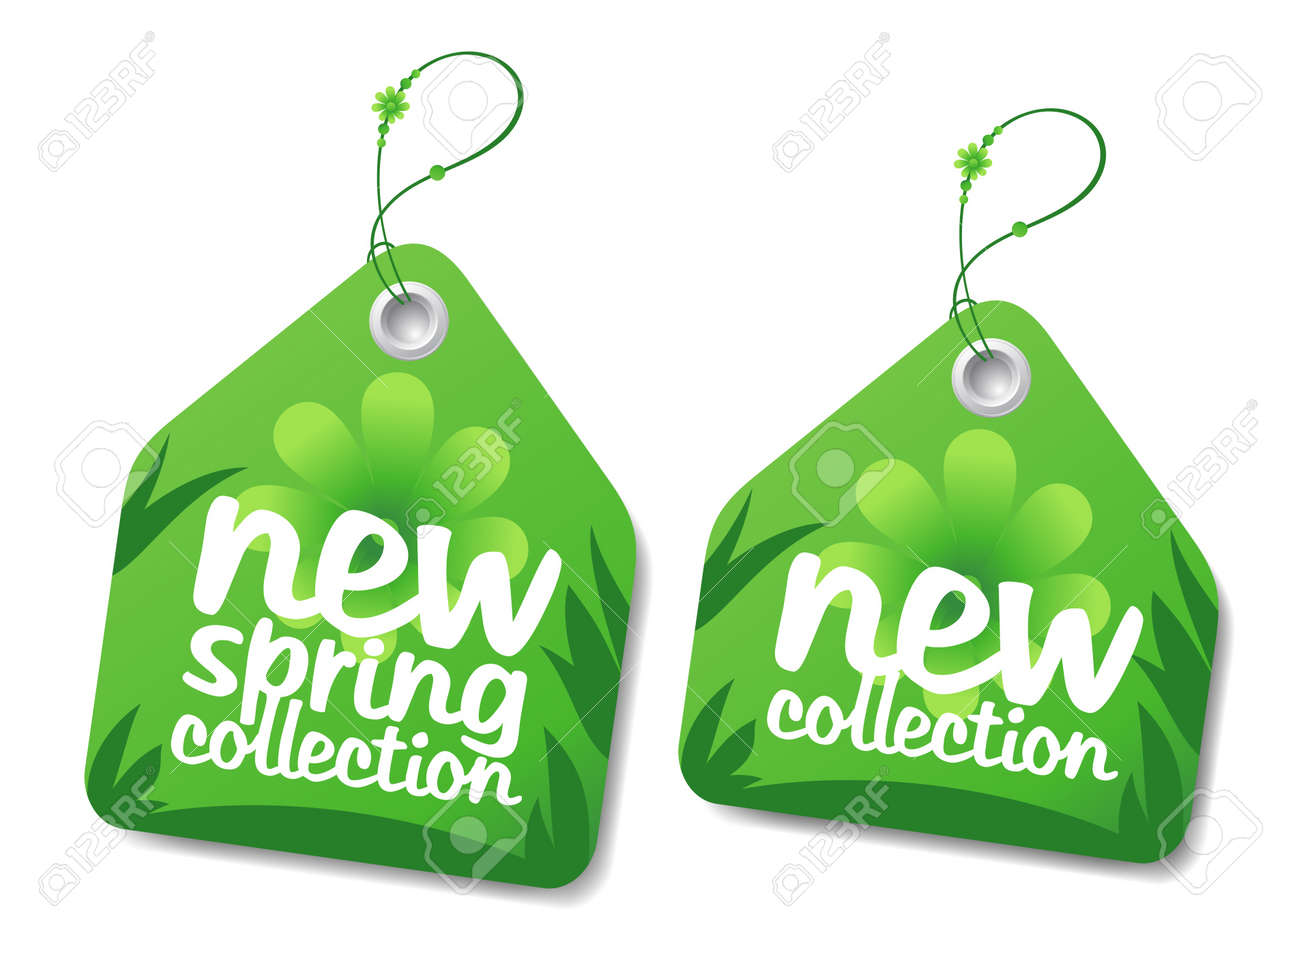 Images of Three Spring Sales Labels - #SC